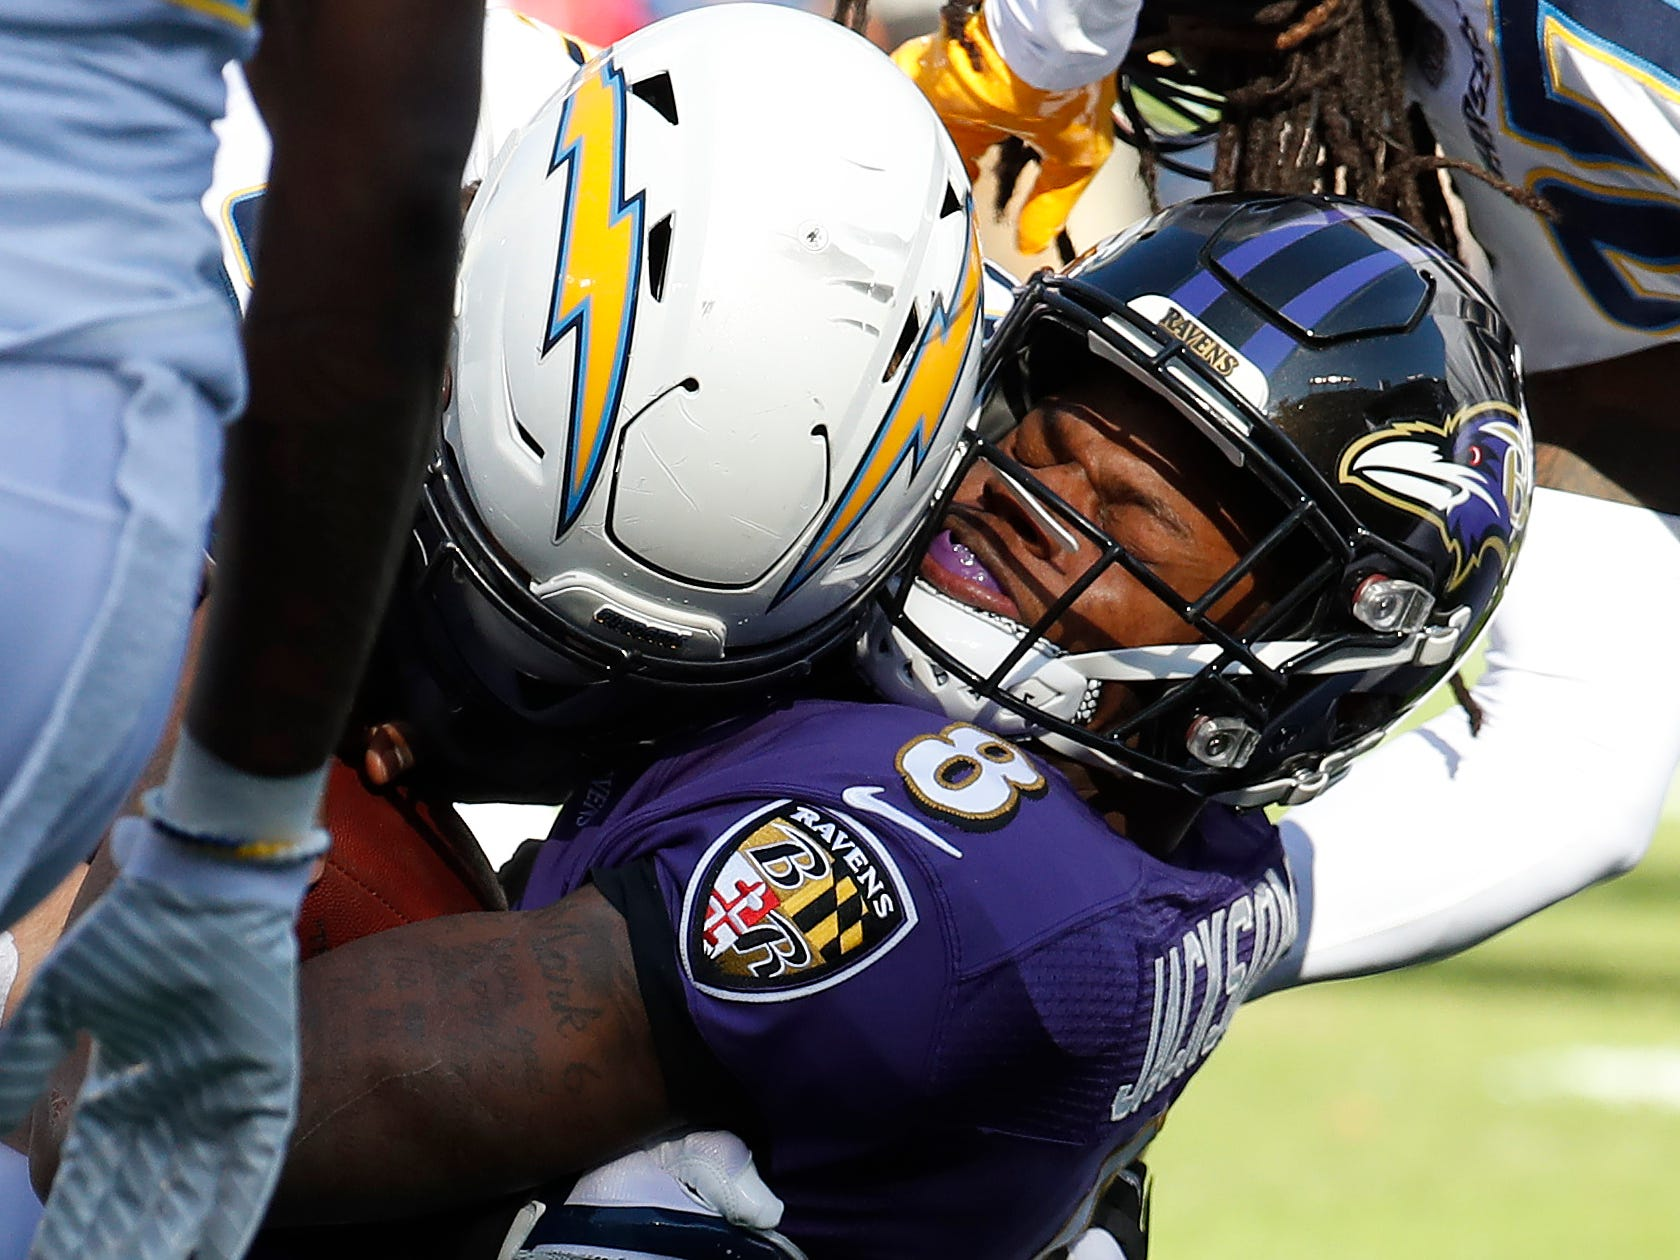 Baltimore Ravens quarterback Lamar Jackson (8) is tackled by Los Angeles Chargers defensive end Joey Bosa (99) in the first quarter in a AFC Wild Card playoff football game at M&T Bank Stadium.